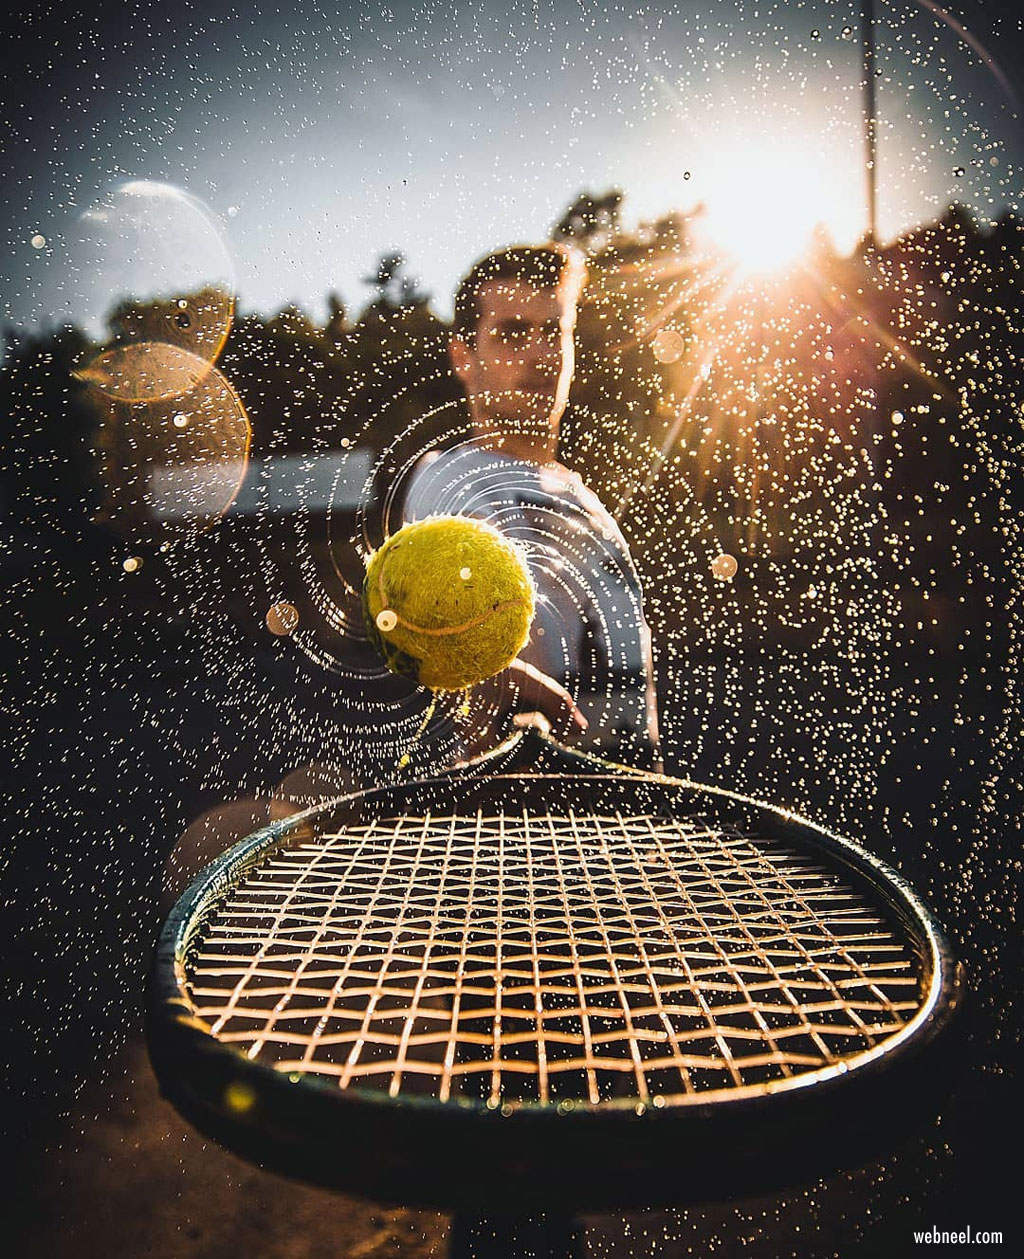 motion photography tennis ball by jordi koalitic